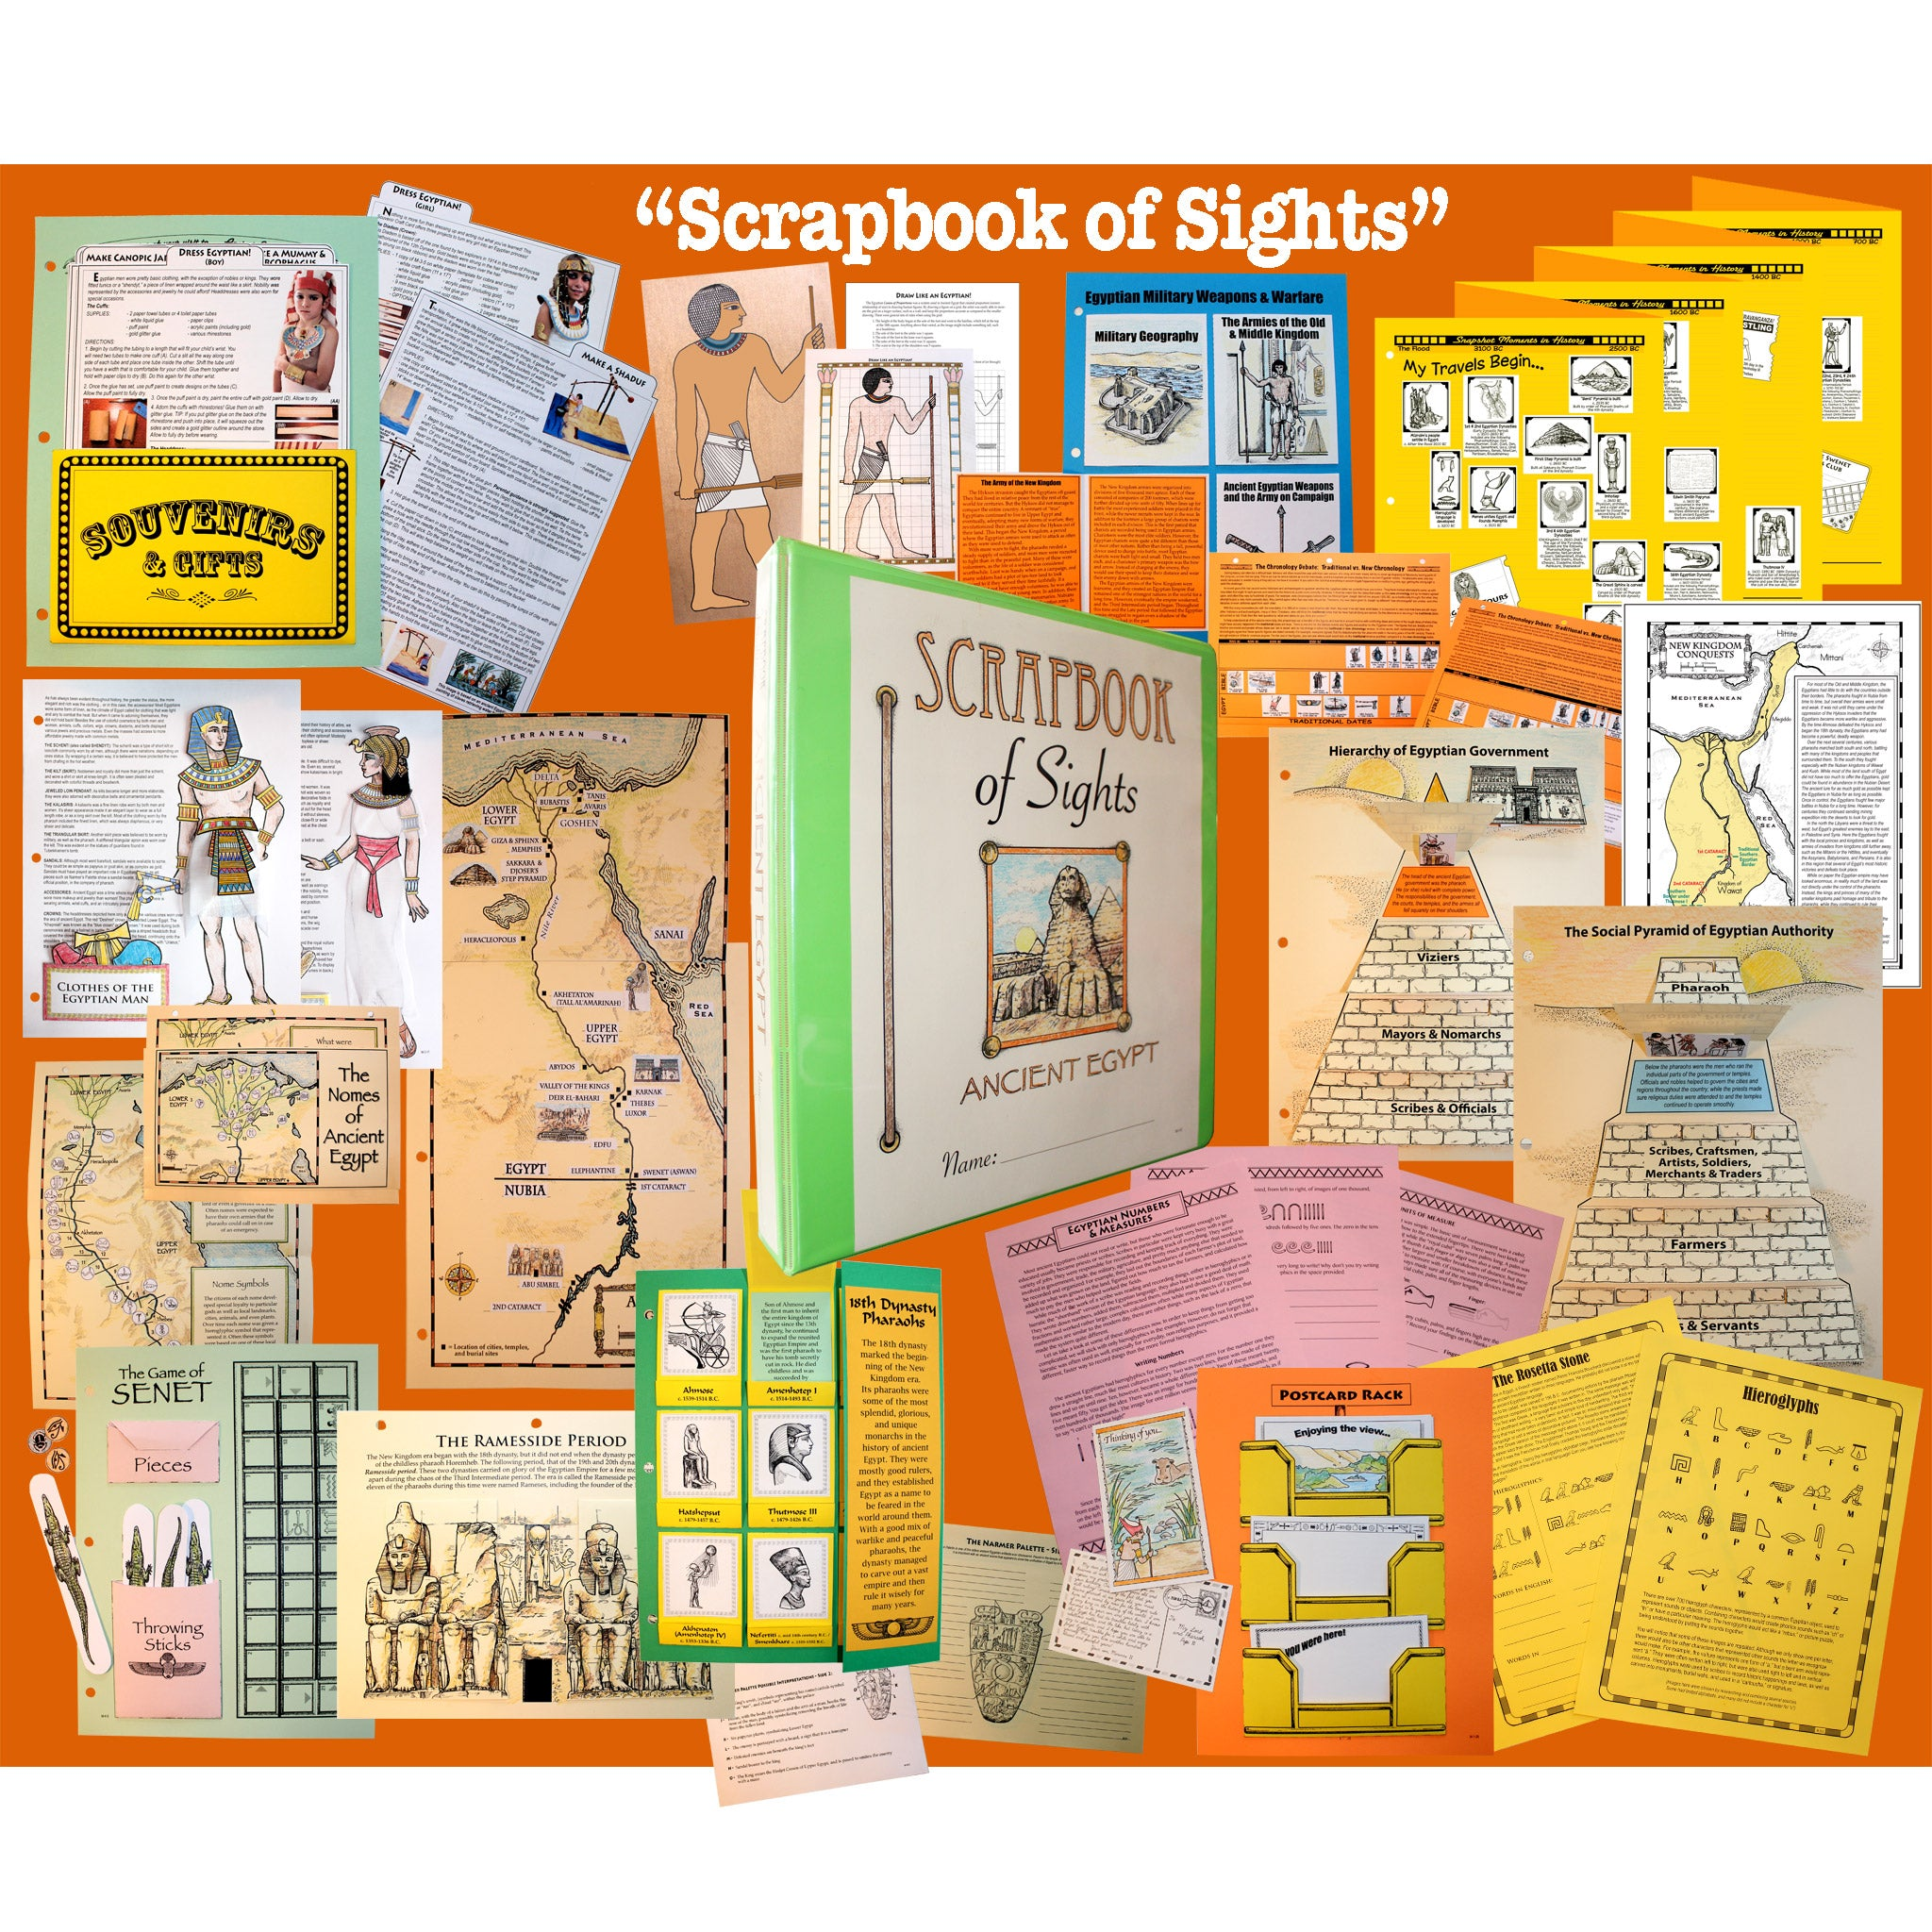 Project passport ancient egypt world history study home school in project passport ancient egypt scrapbook of sights notebooking pages kristyandbryce Choice Image